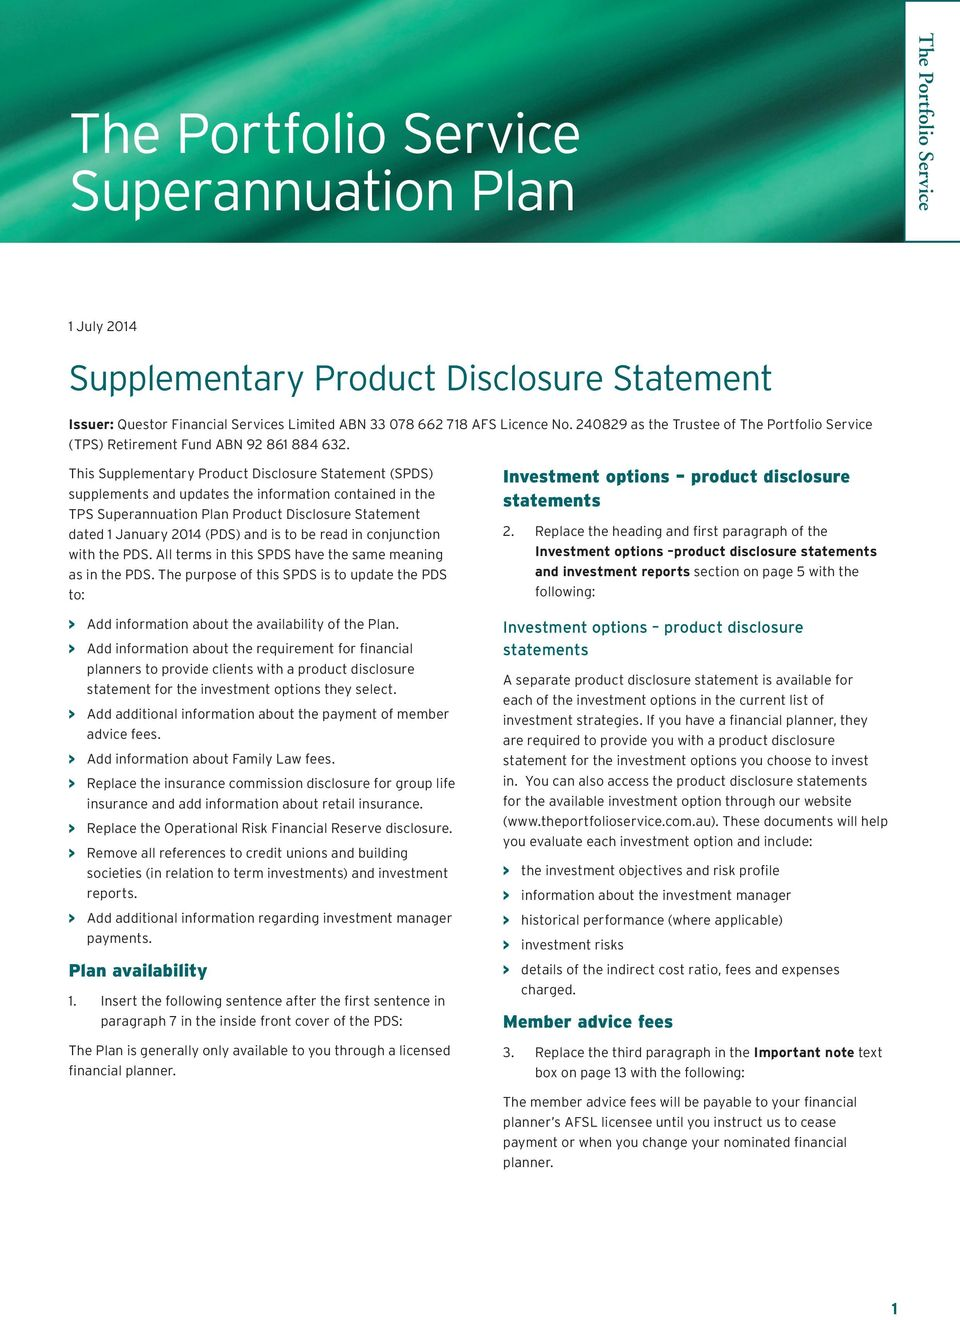 This Supplementary Product Disclosure Statement (SPDS) supplements and updates the information contained in the TPS Superannuation Plan Product Disclosure Statement dated 1 January 2014 (PDS) and is